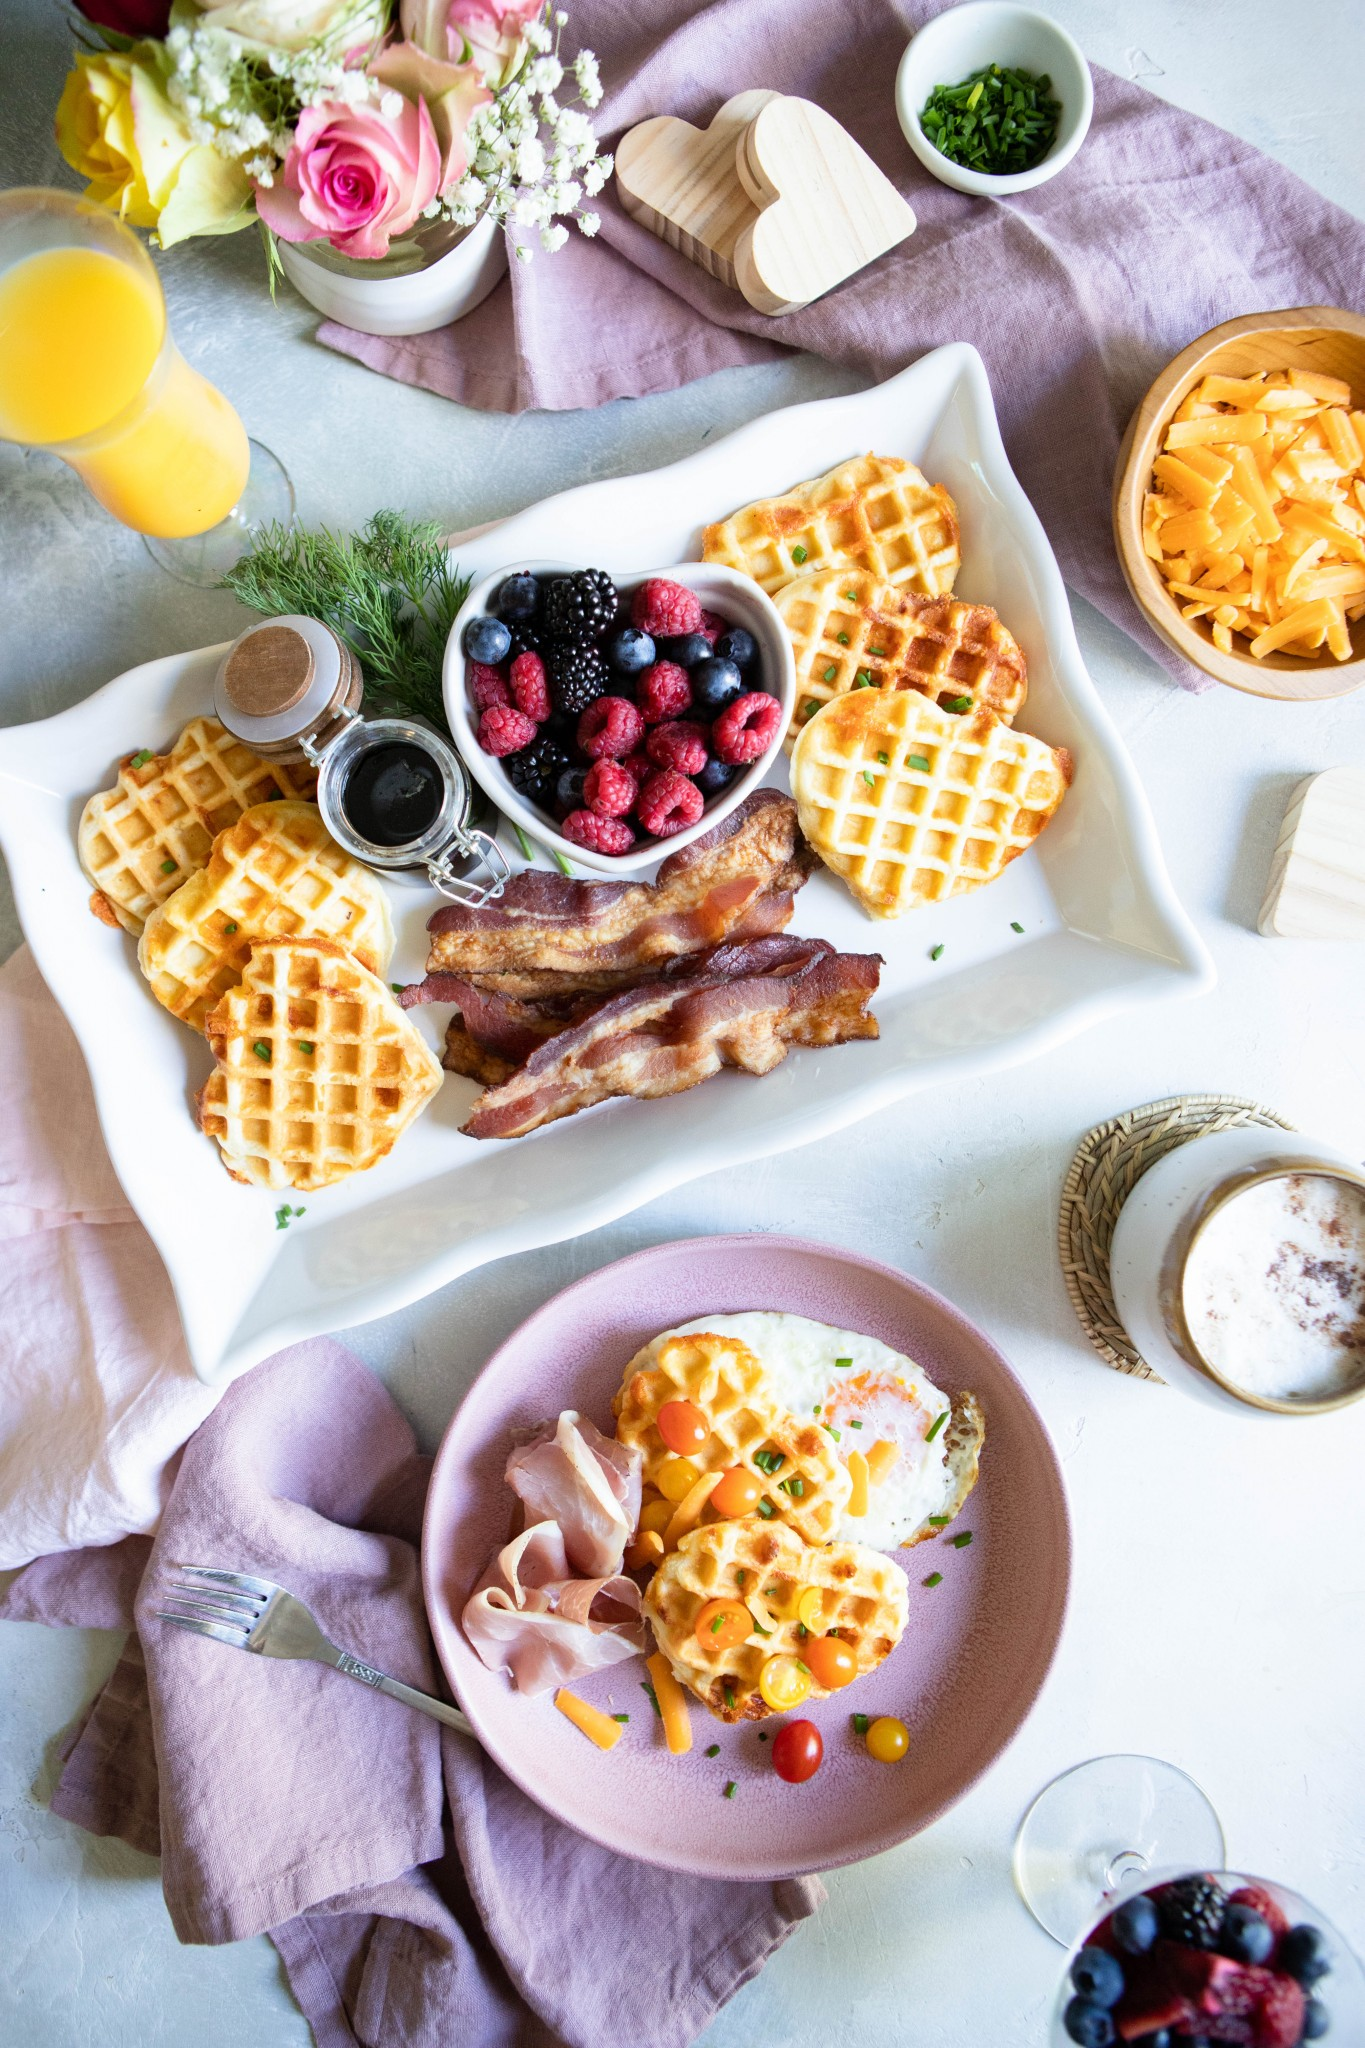 Cheddar and buttermilk waffles on a platter with fruit, bacon and tomatoes